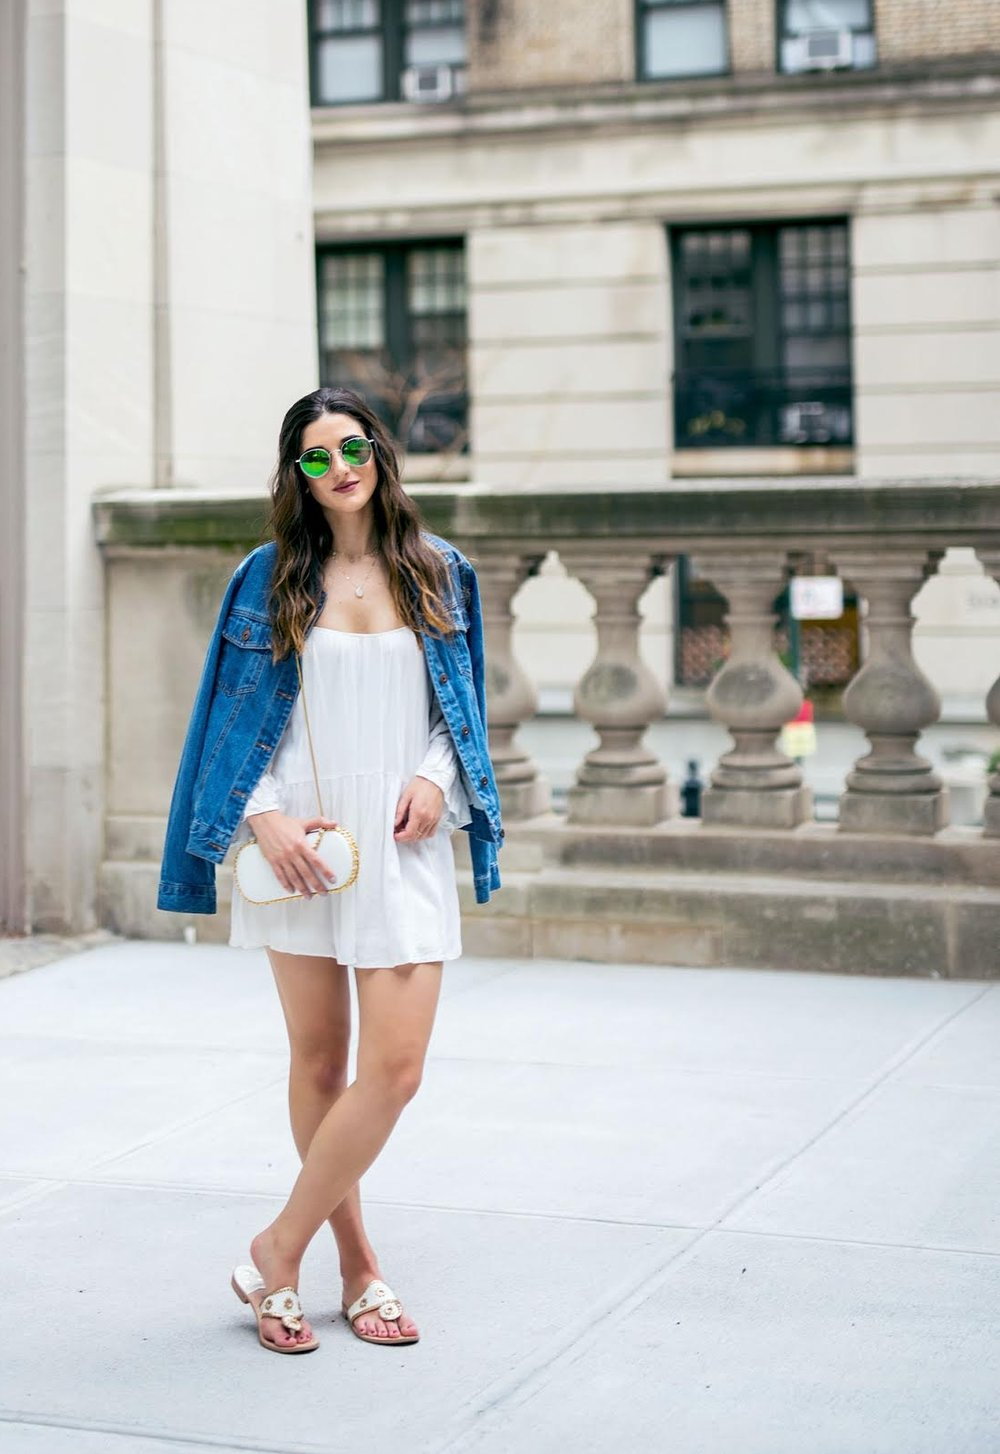 White Romper Jack Rogers Sandals Louboutins & Love Fashion Blog Esther Santer NYC Street Style Blogger Outfit OOTD Trendy Summer Spring Shopping Girls Women Hair Jean Jacket Denim Chokers Leather Shoes Long Sleeves Quality Pretty Cute Beautiful Look.jpg